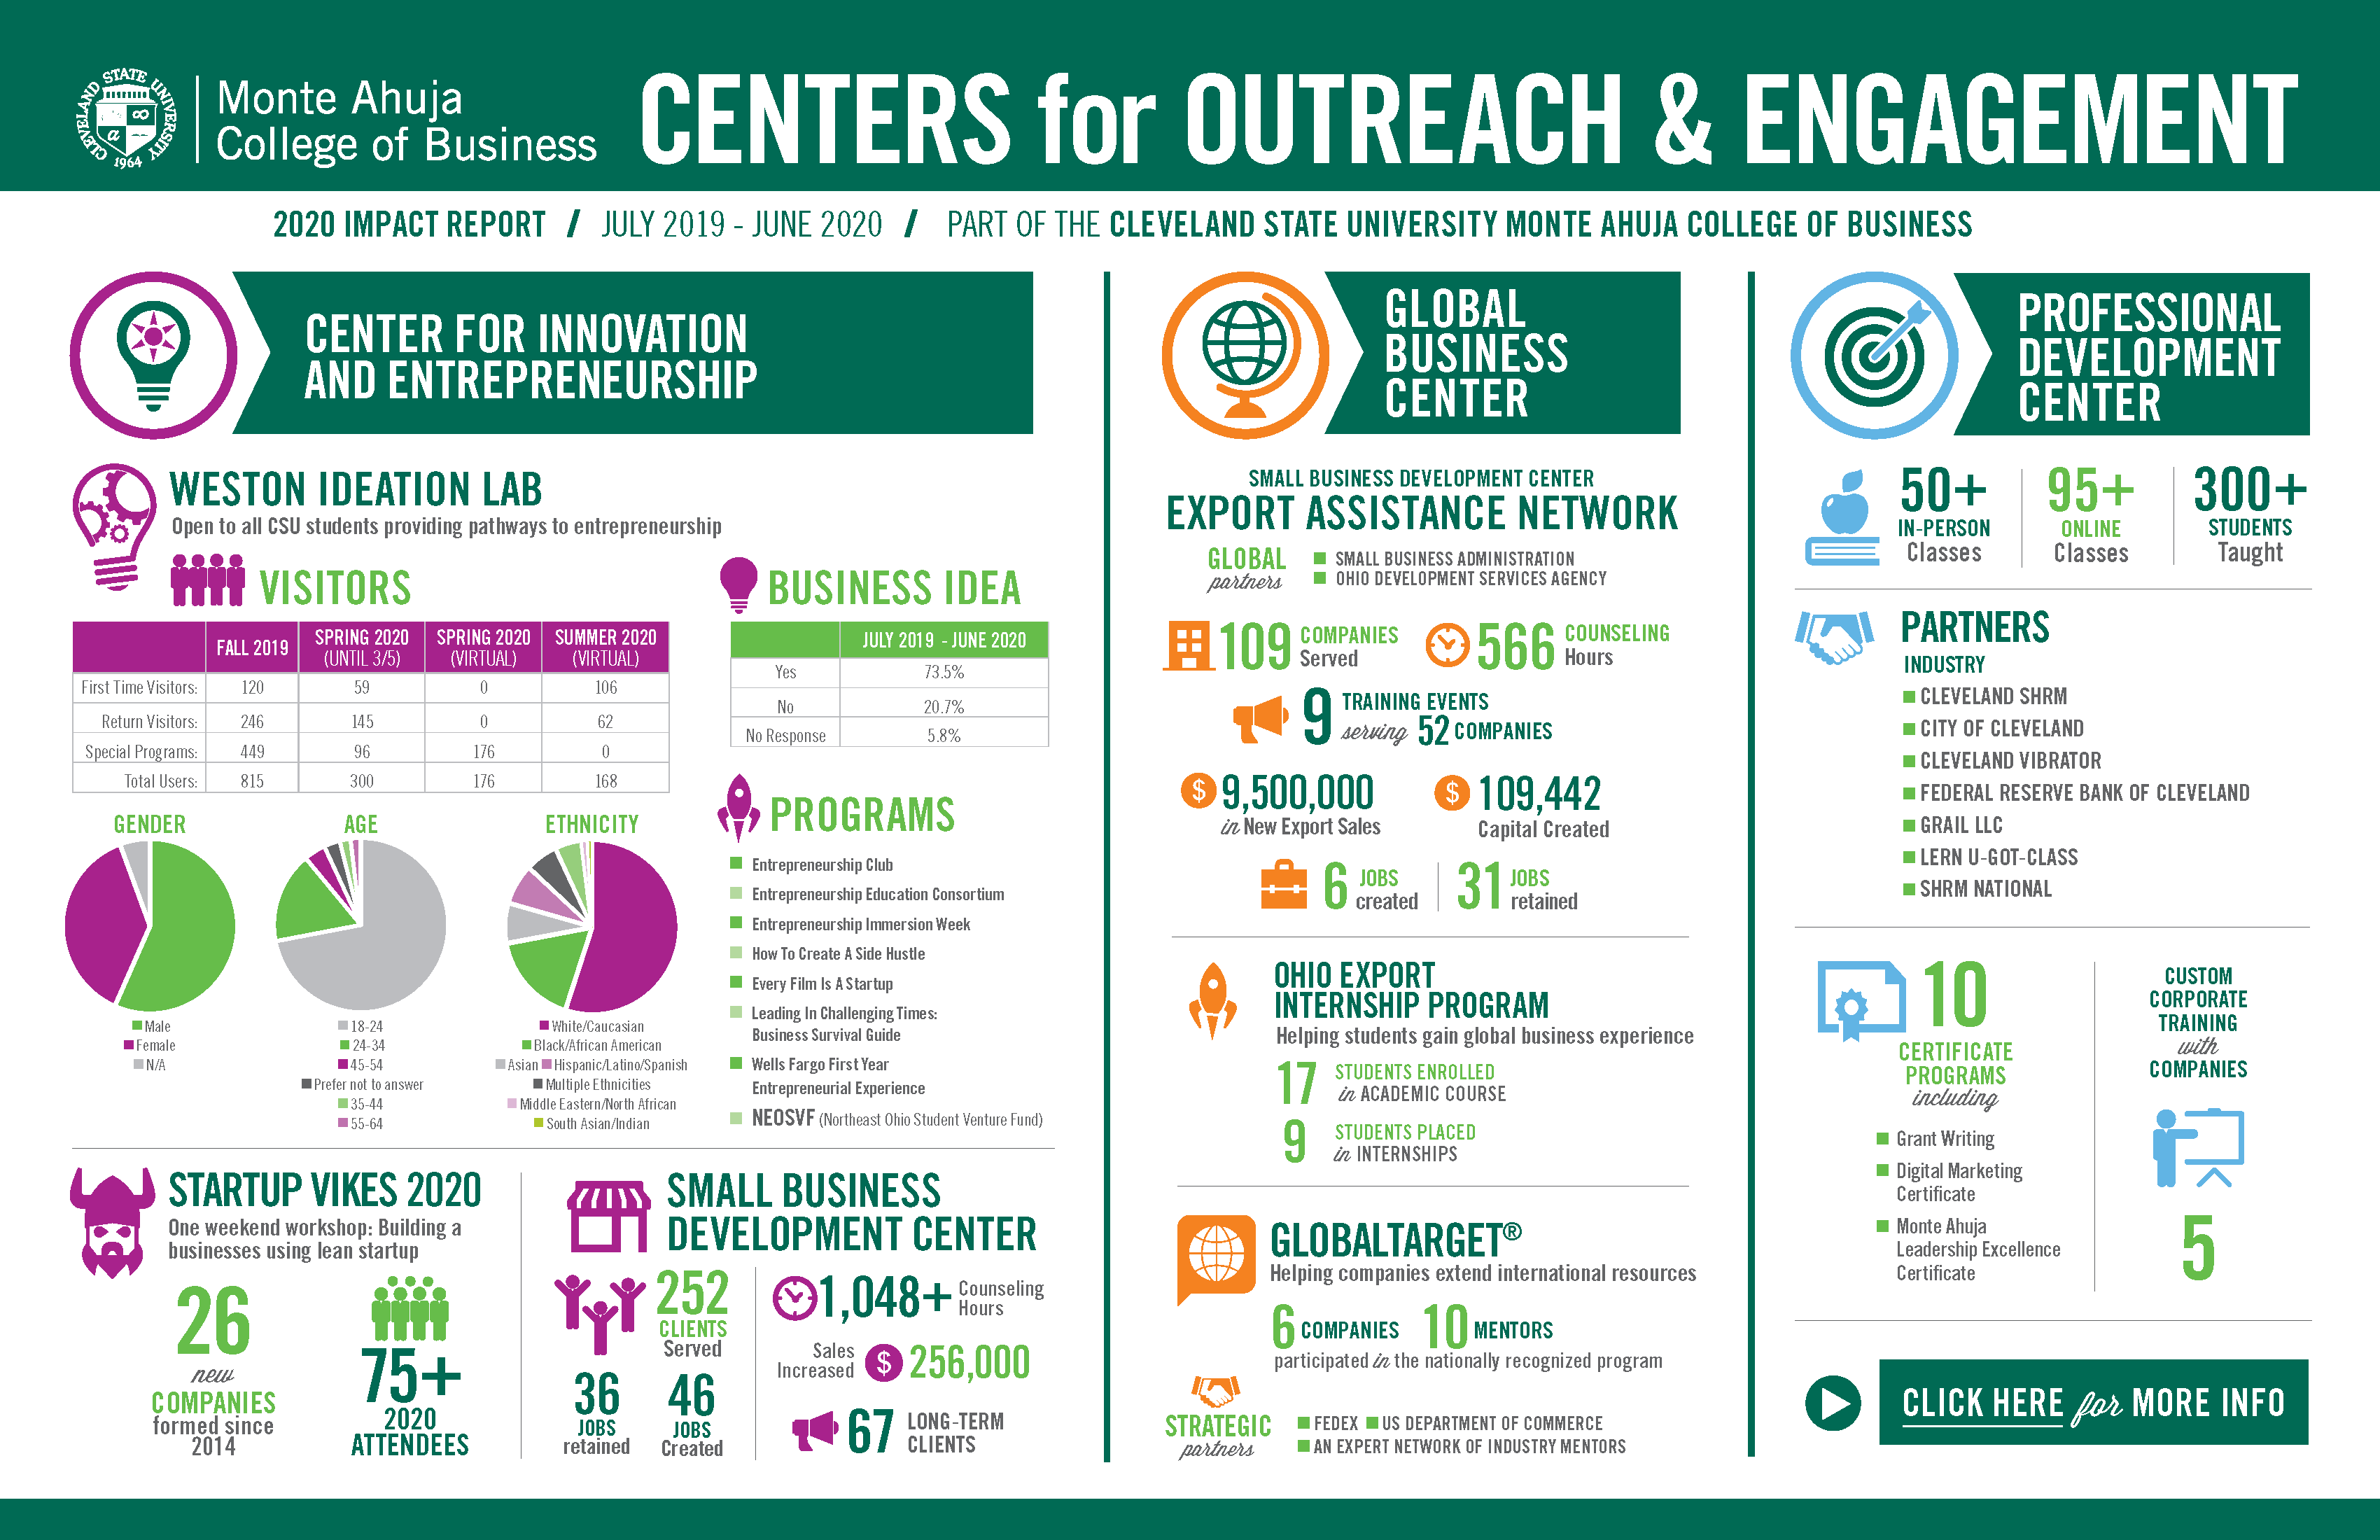 Centers for Outreach & Engagement - 2020 Impact Report